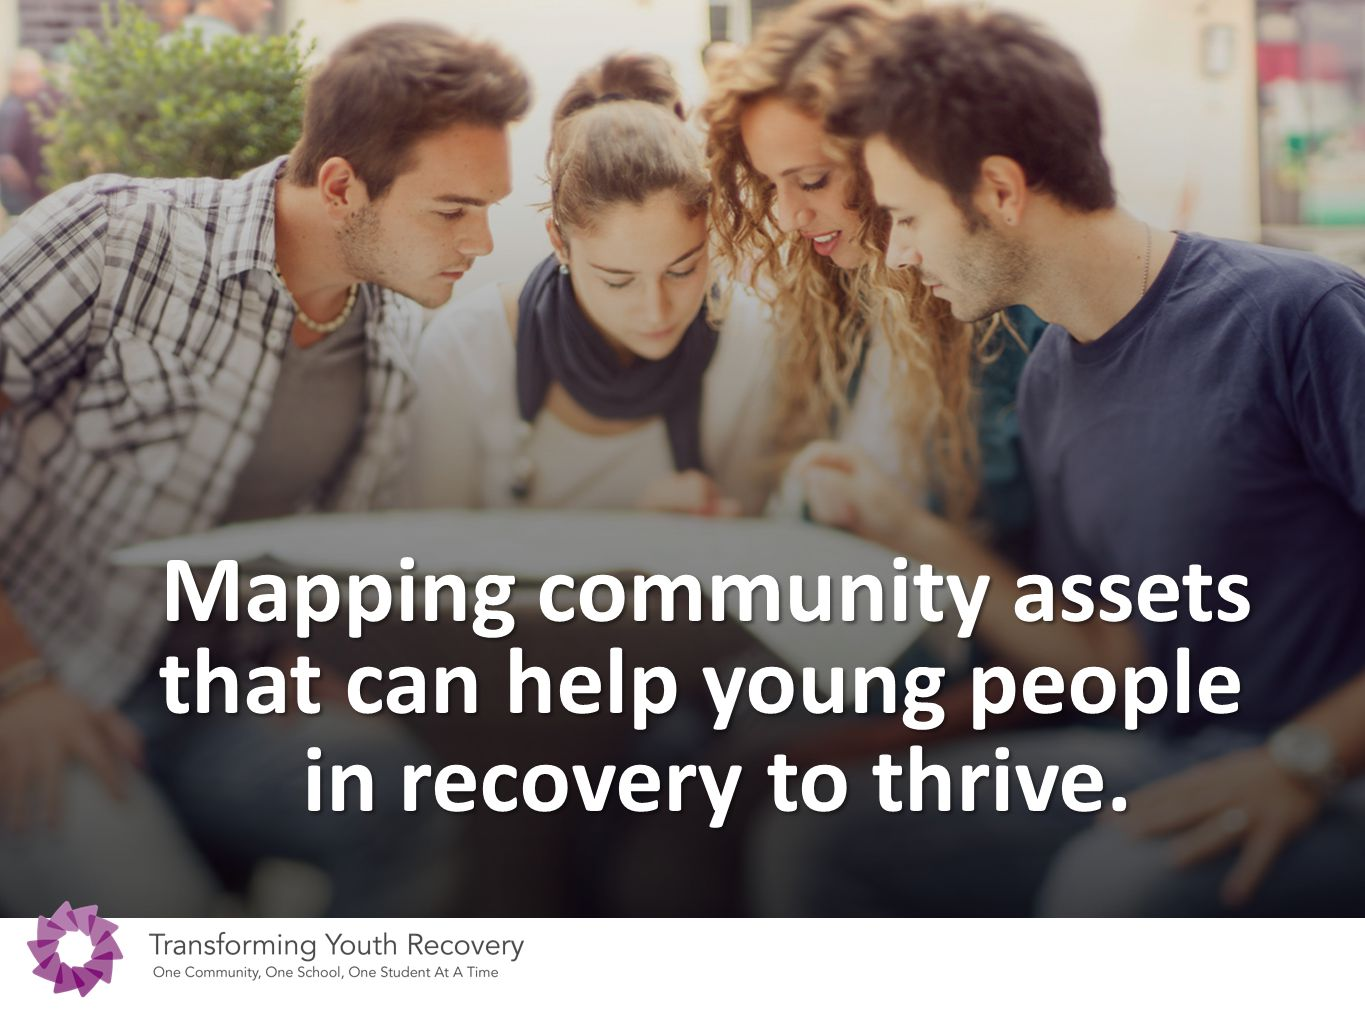 Mapping community assets that can help young people in recovery to thrive. in recovery to thrive.